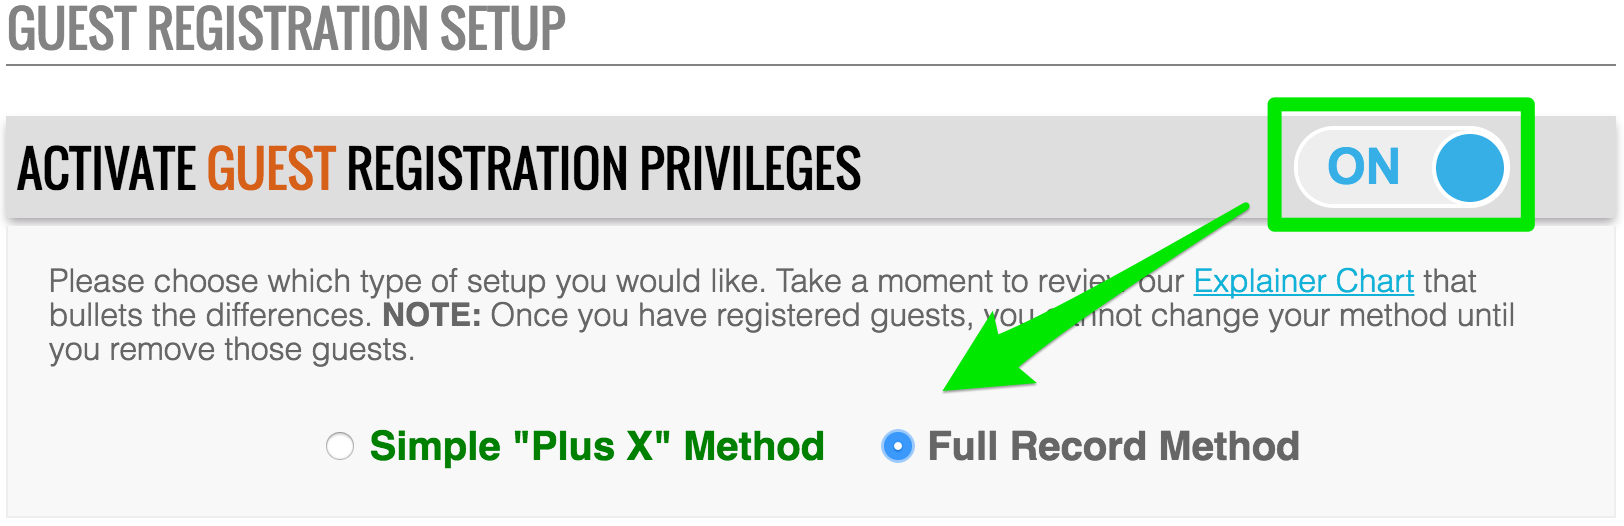 Turn_on_Guest_Privileges.png